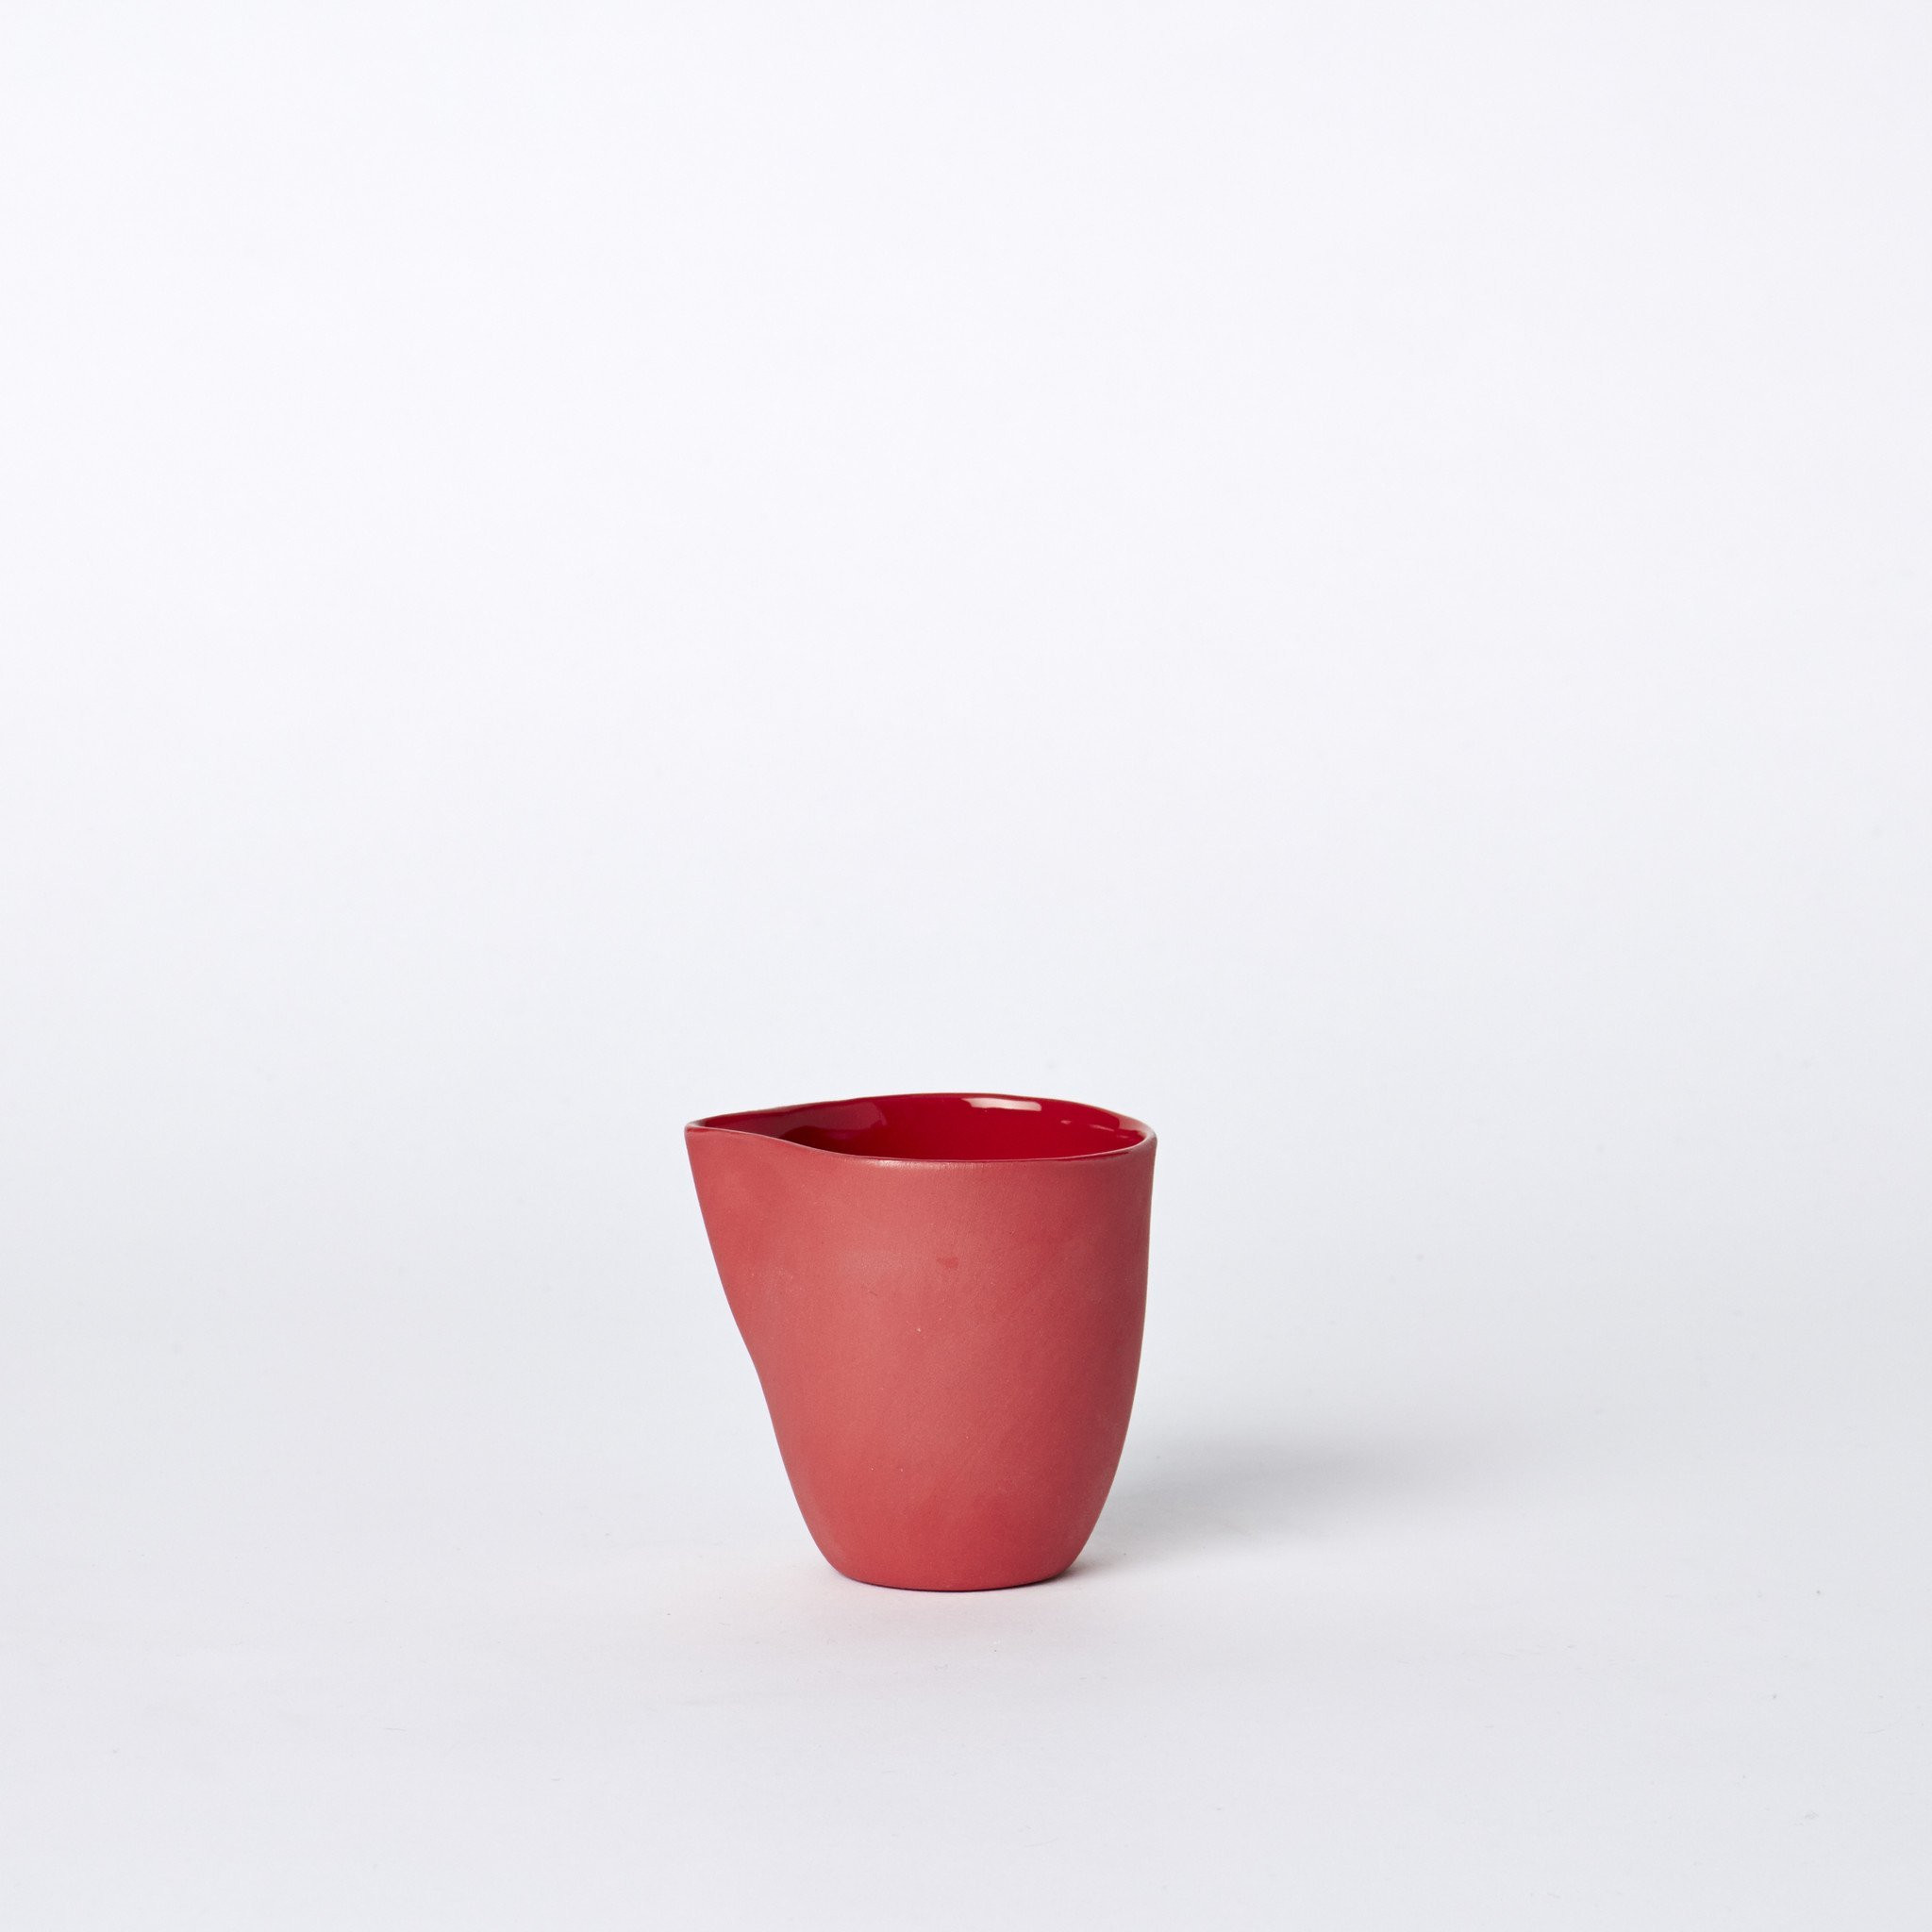 Ettore sottsass Vase Of Serving 2 Regarding Mud Australia Jug Small Red Placewares